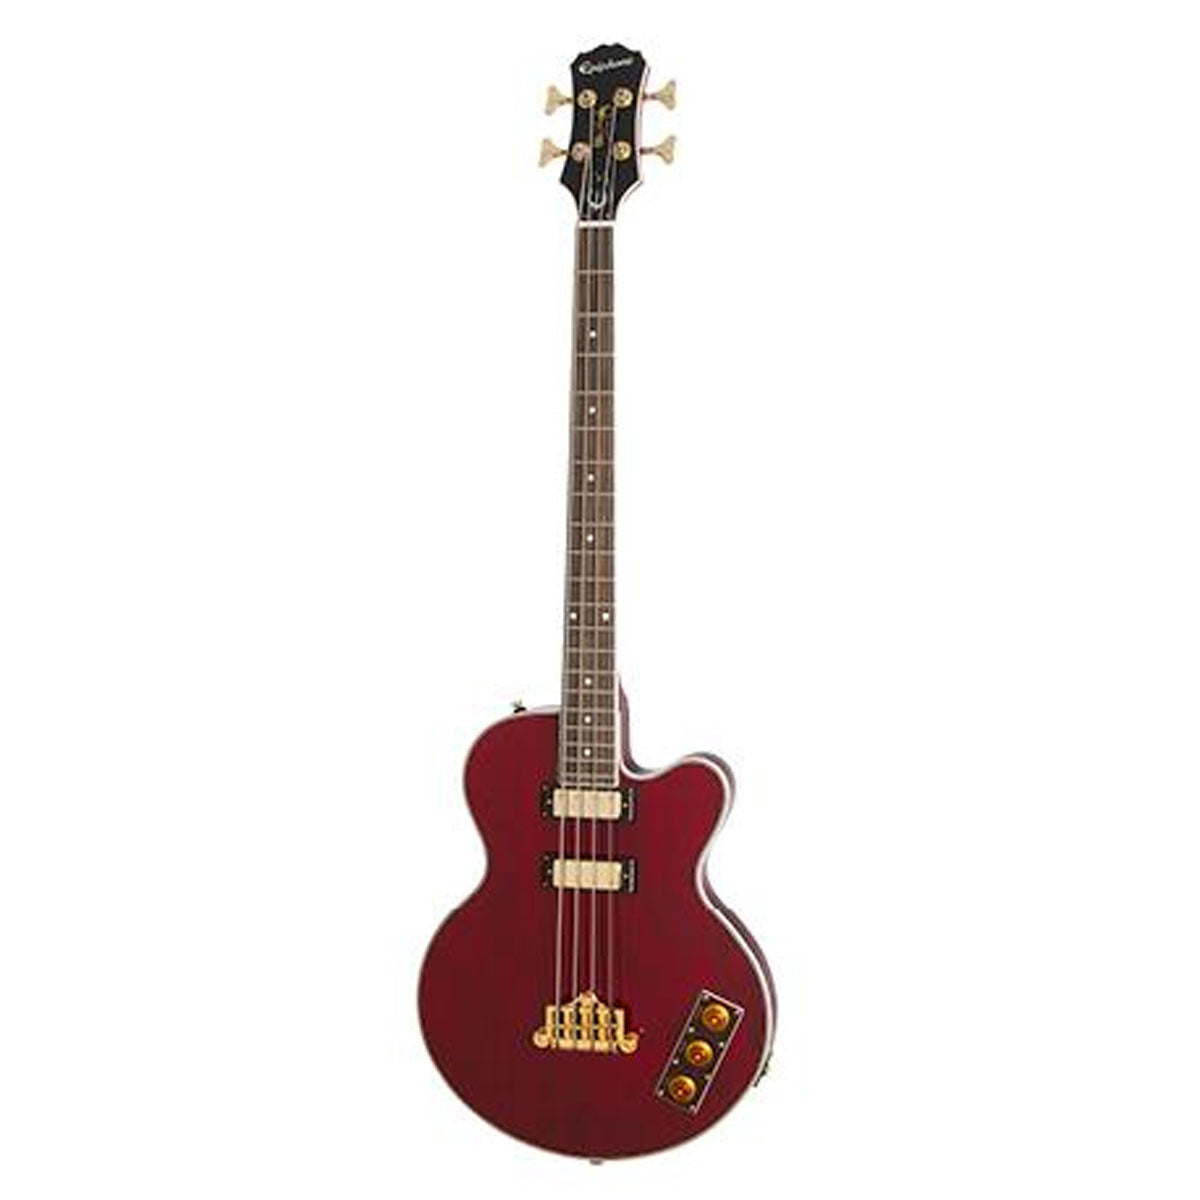 Epiphone Allen Woody Signature Bass Guitar Limited Limited Edition Rumblekat Wine Red - EBAKWRGH1